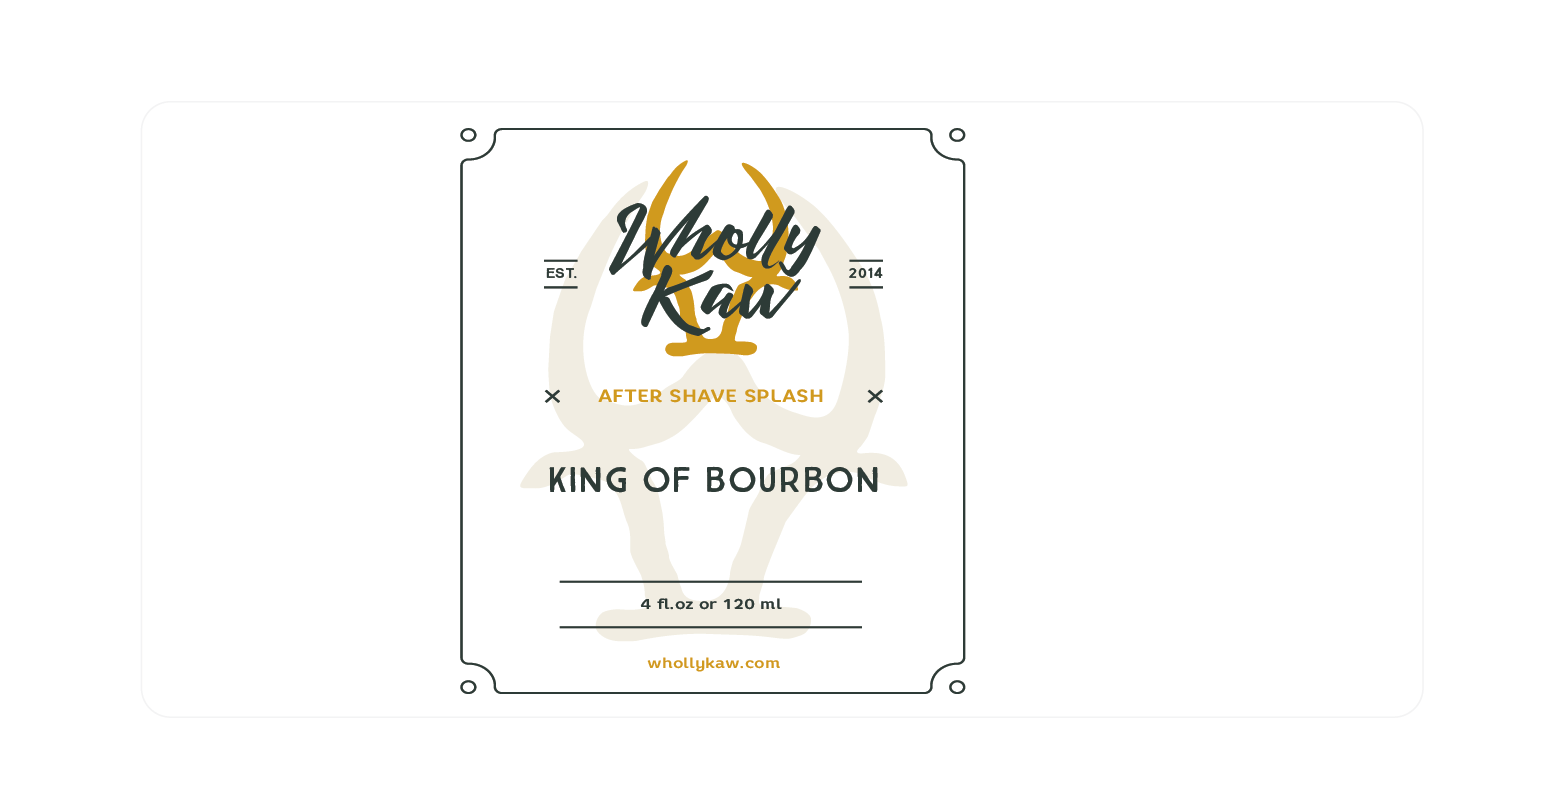 Wholly Kaw - King of Bourbon - Aftershave image